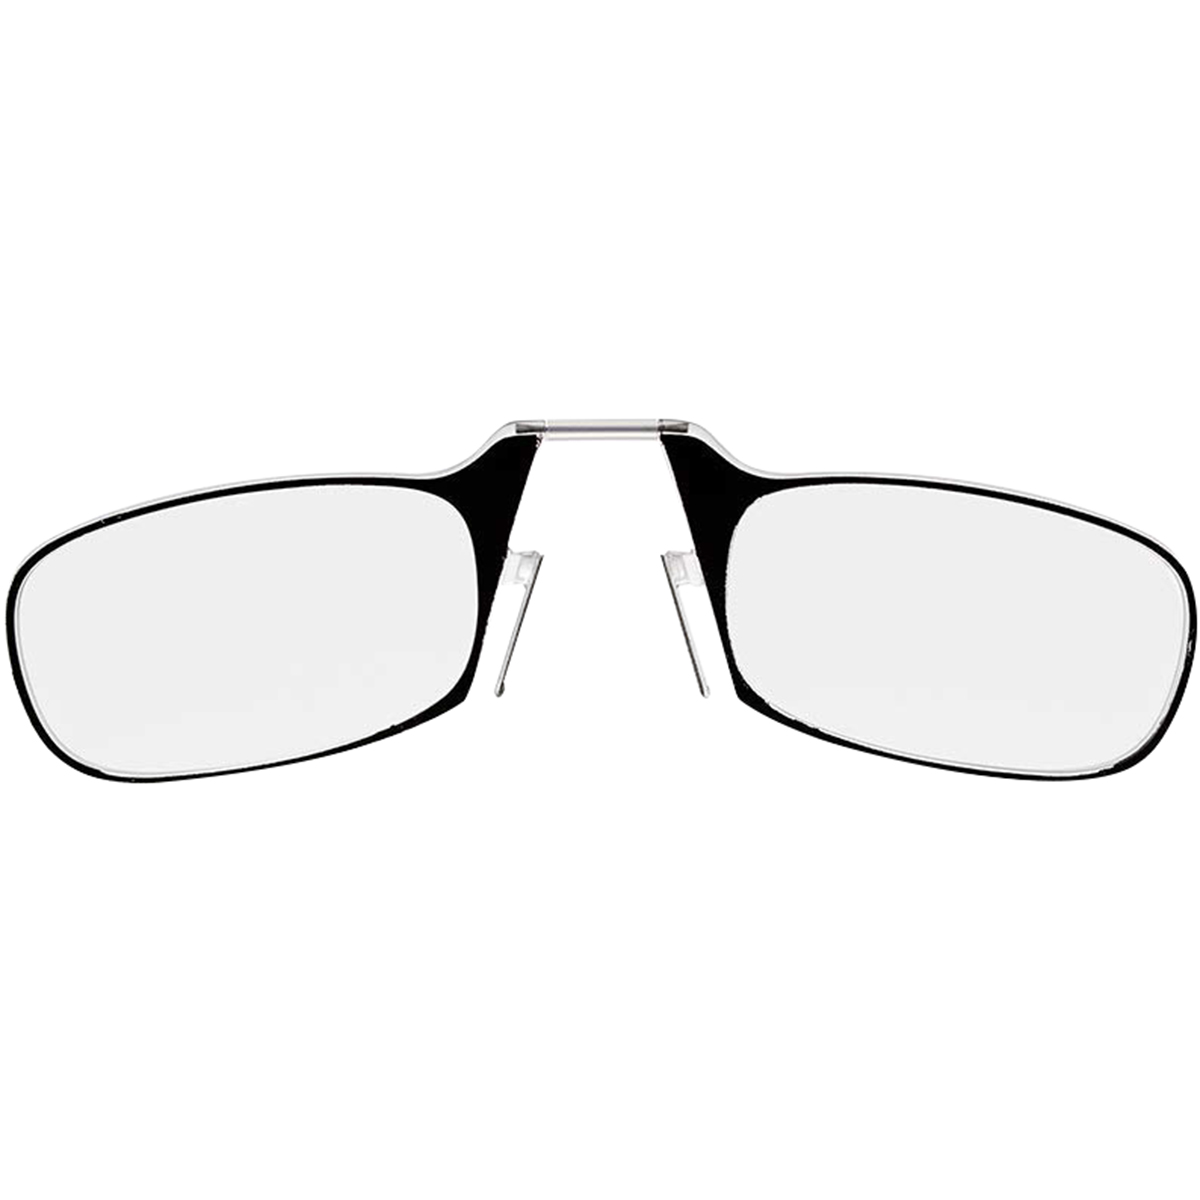 ThinOptics-Secure-Fit-Armless-Ultralight-Reading-Glasses-with-Universal-Pod-Case thumbnail 5